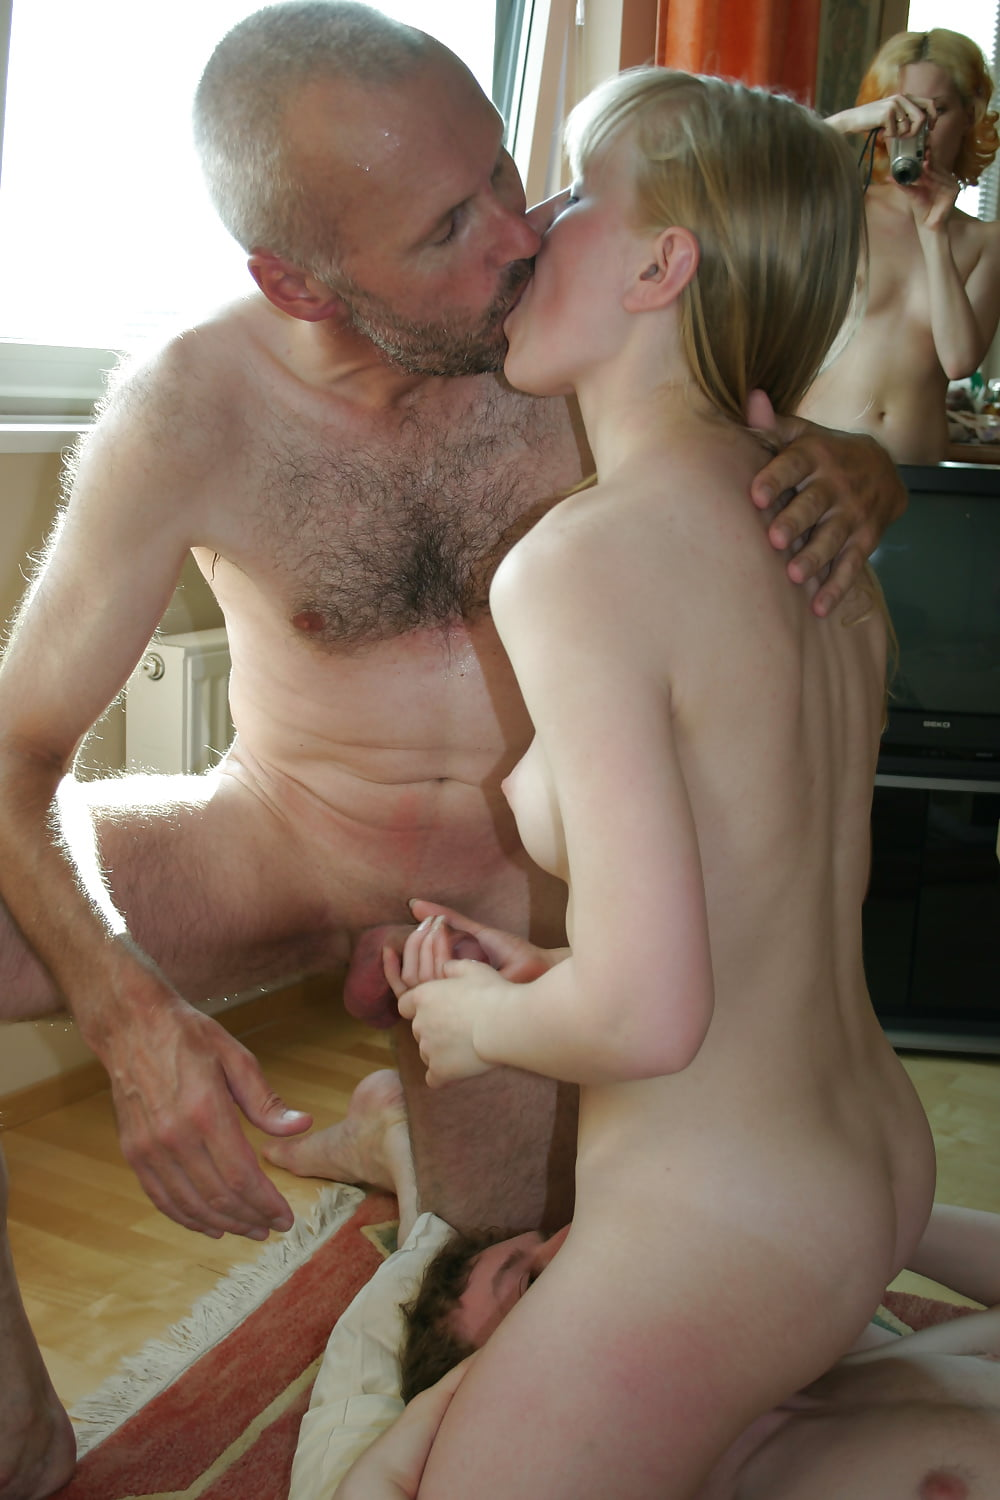 Hairy redhead nude daughters dads cum